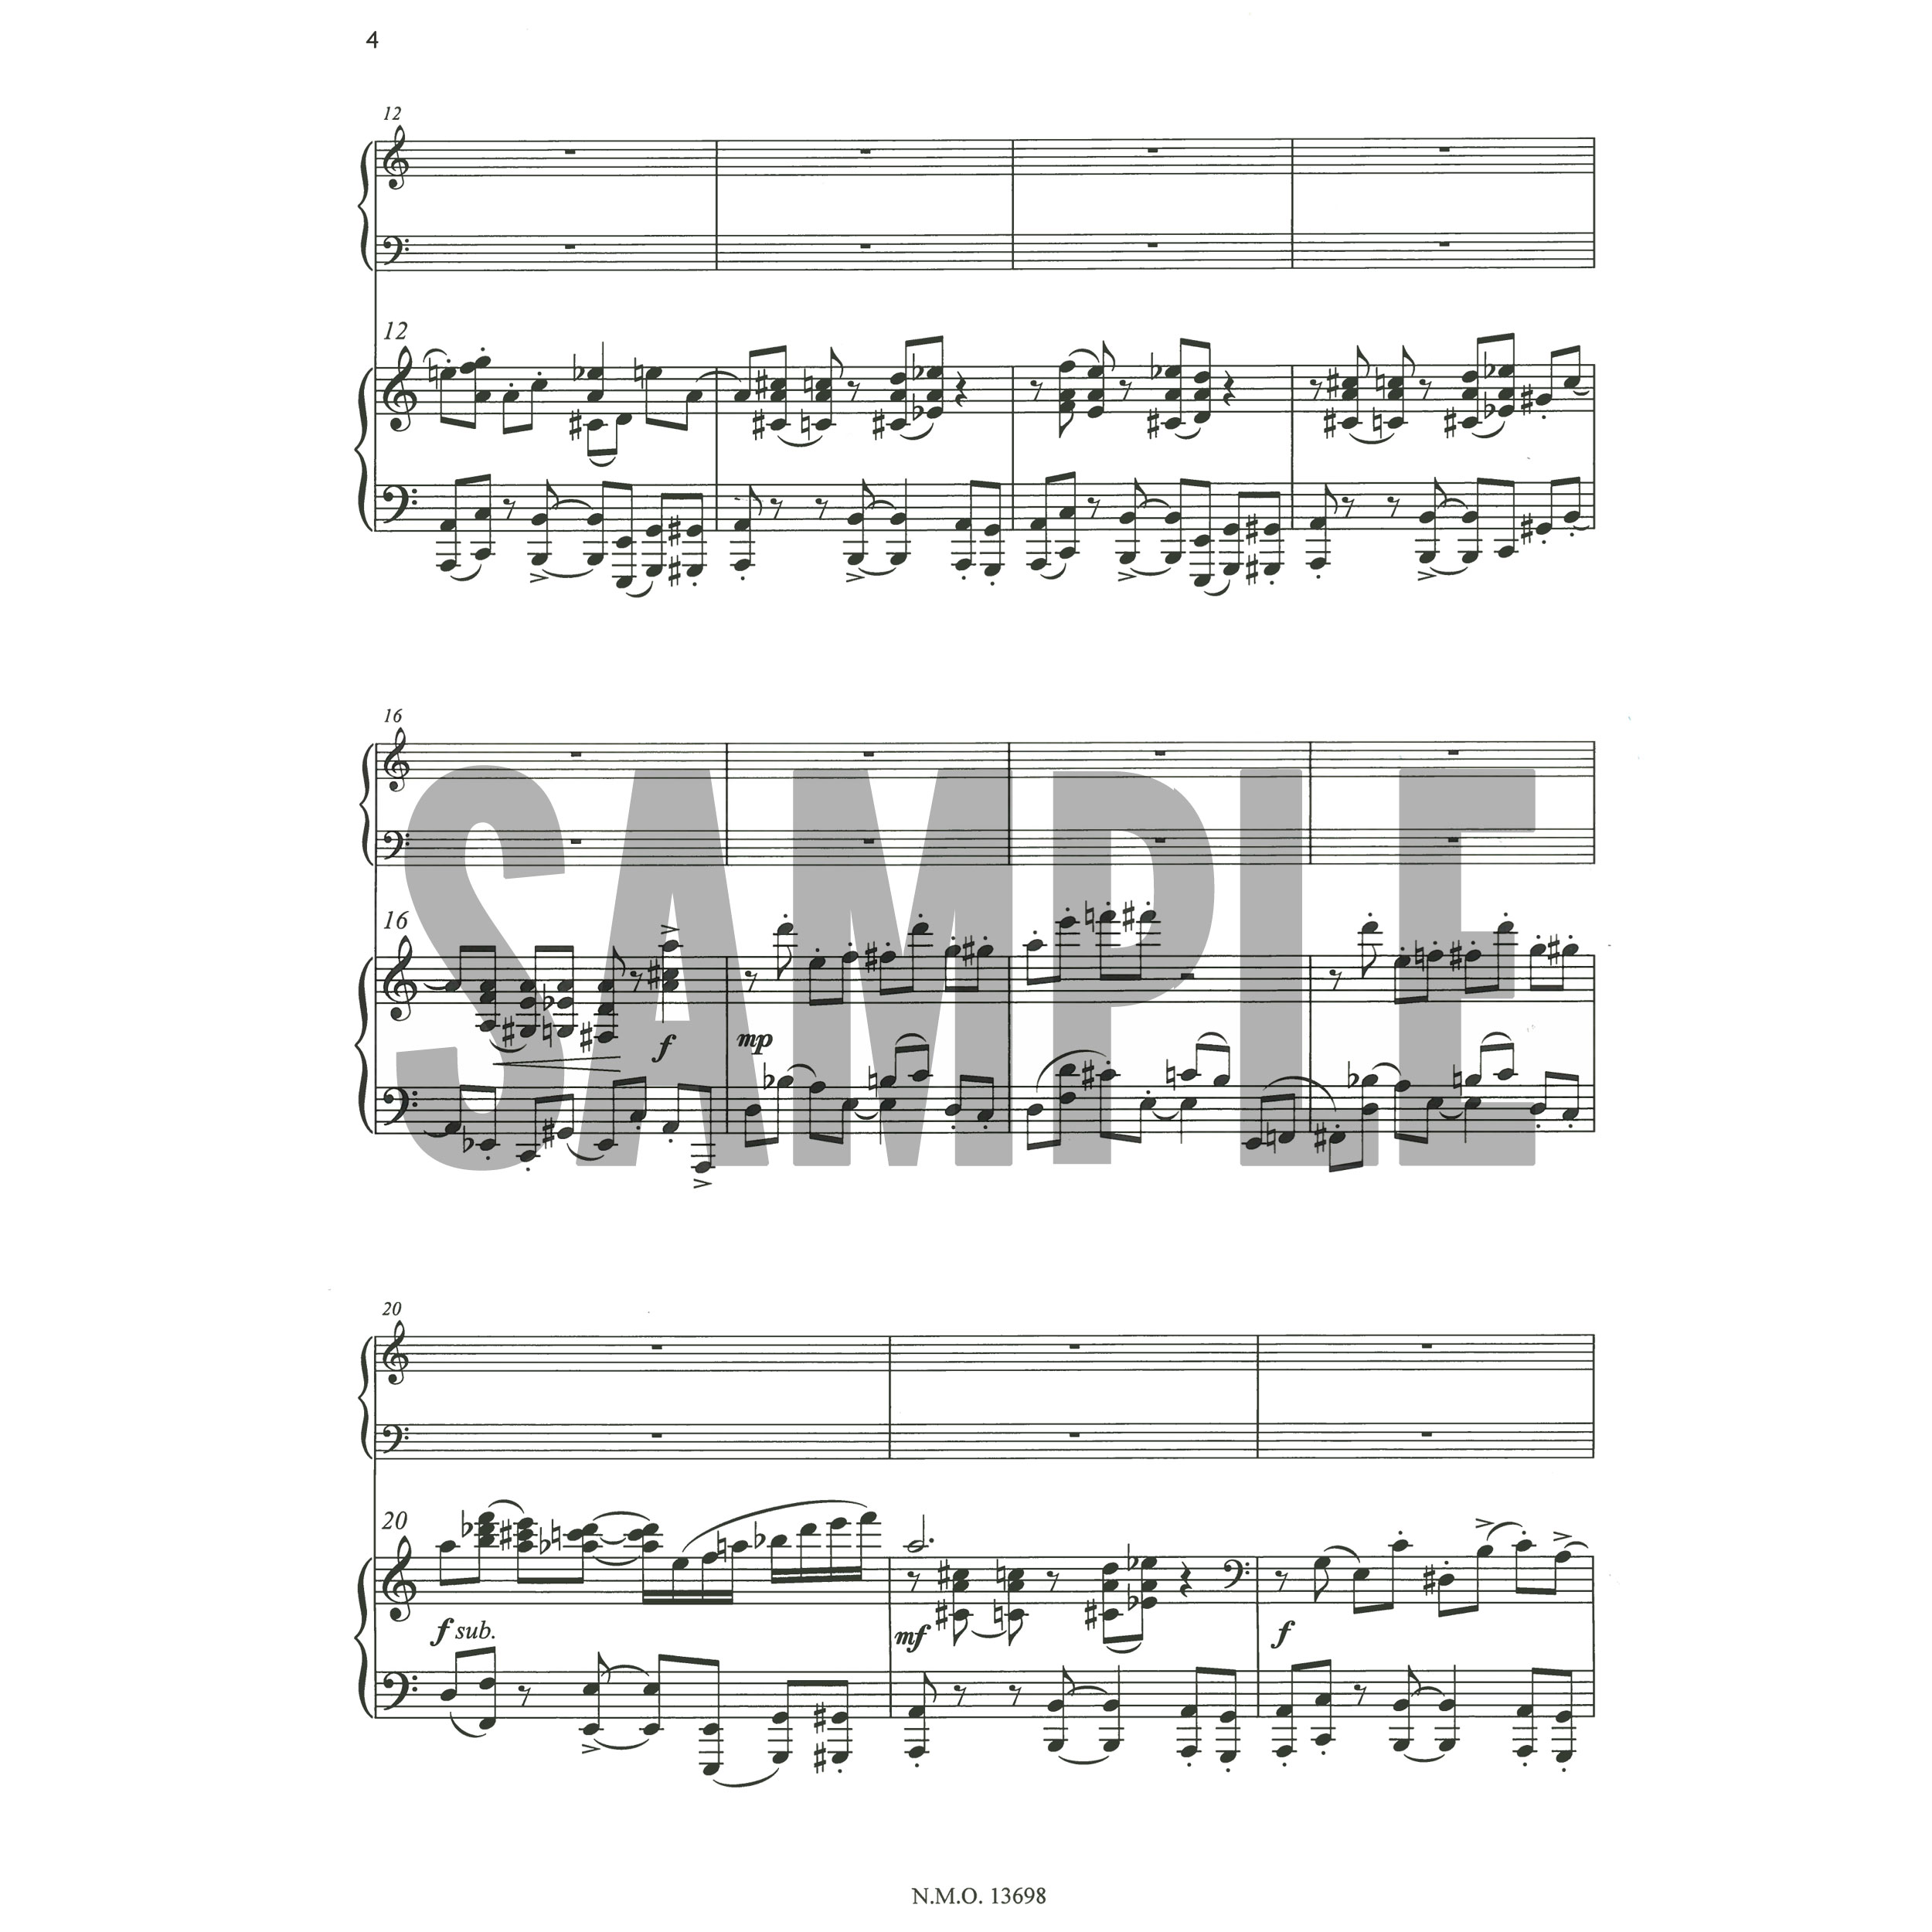 Concerto No 1 for Marimba and Orchestra (Piano Reduction) by Anders Koppel